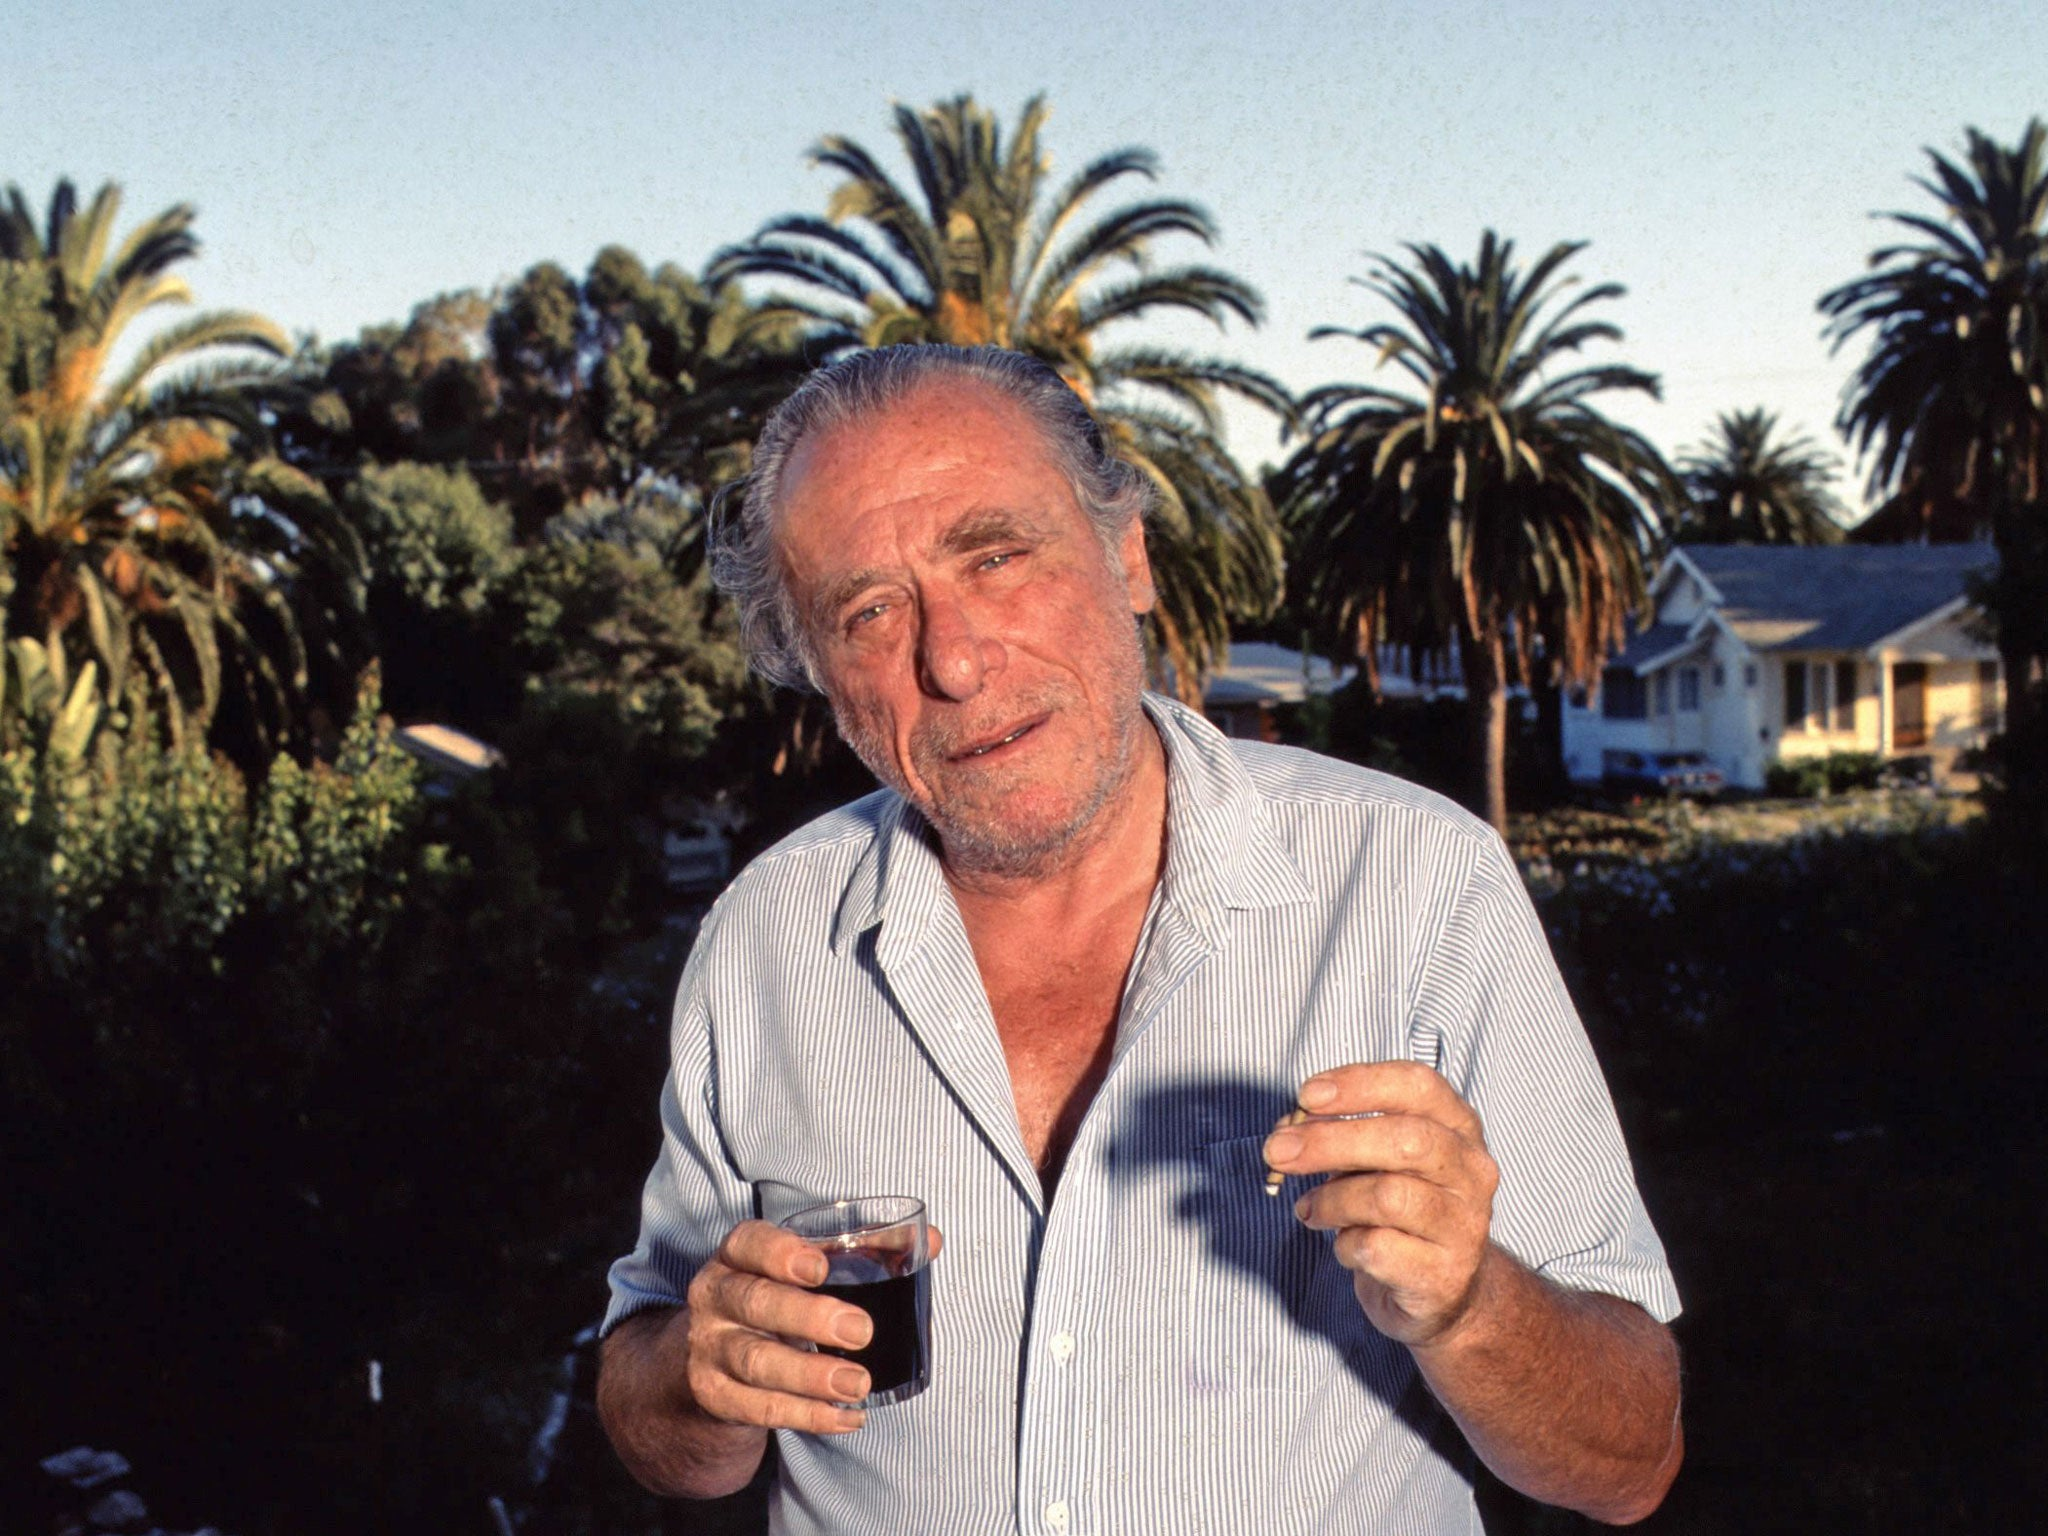 From Bukowski to Hemingway: There's a problem with the way we idolise drunk male writers